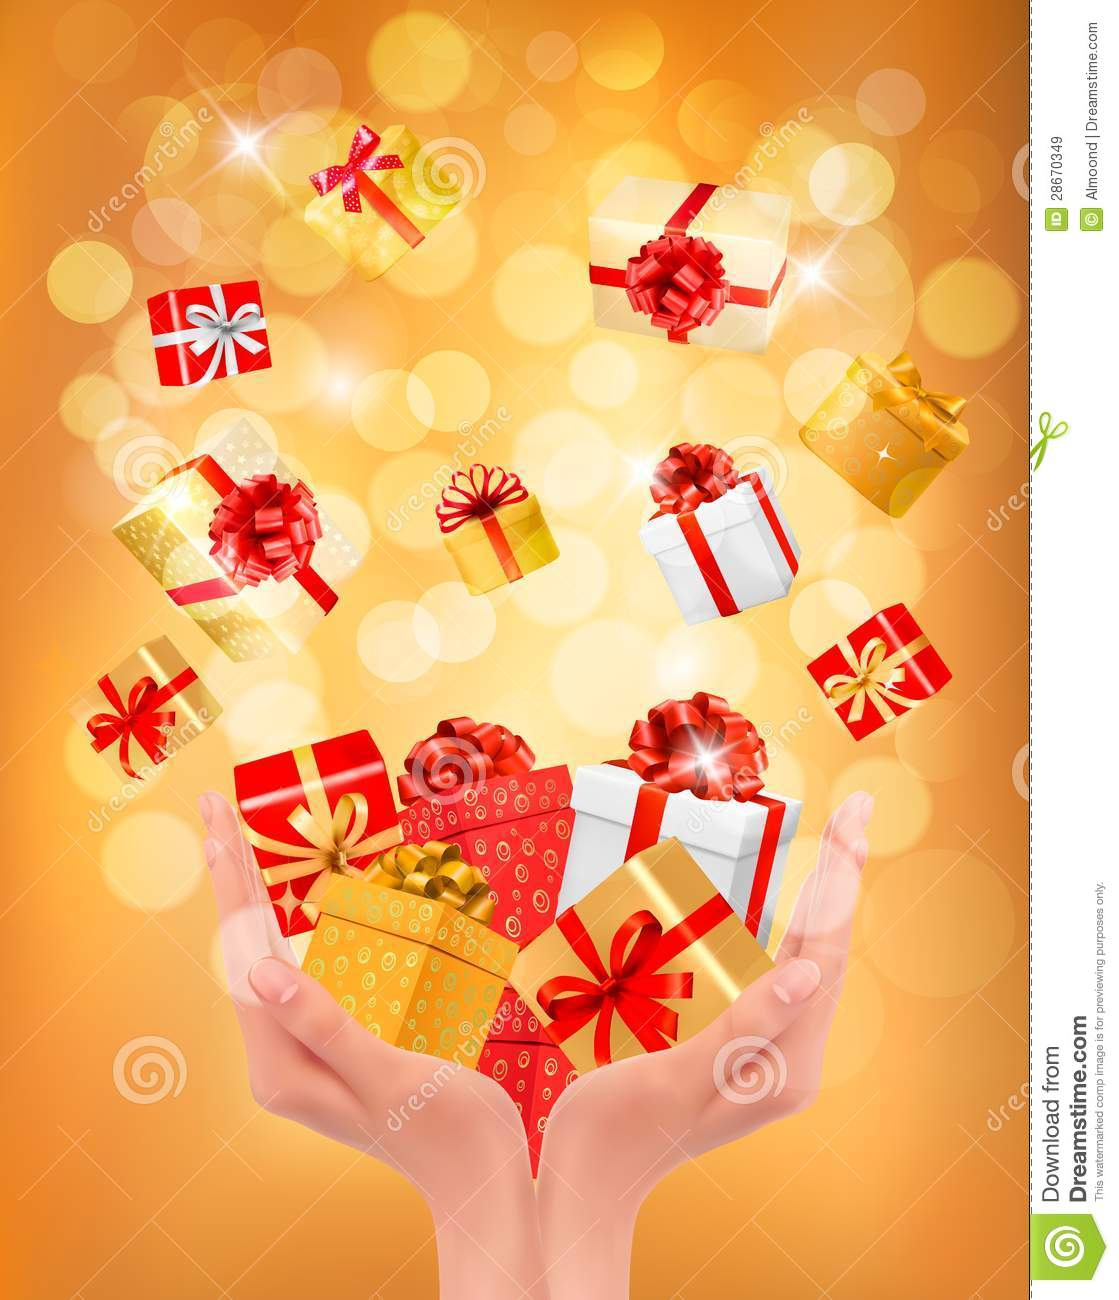 Holiday Background With Hands Holding Gift Boxes Royalty